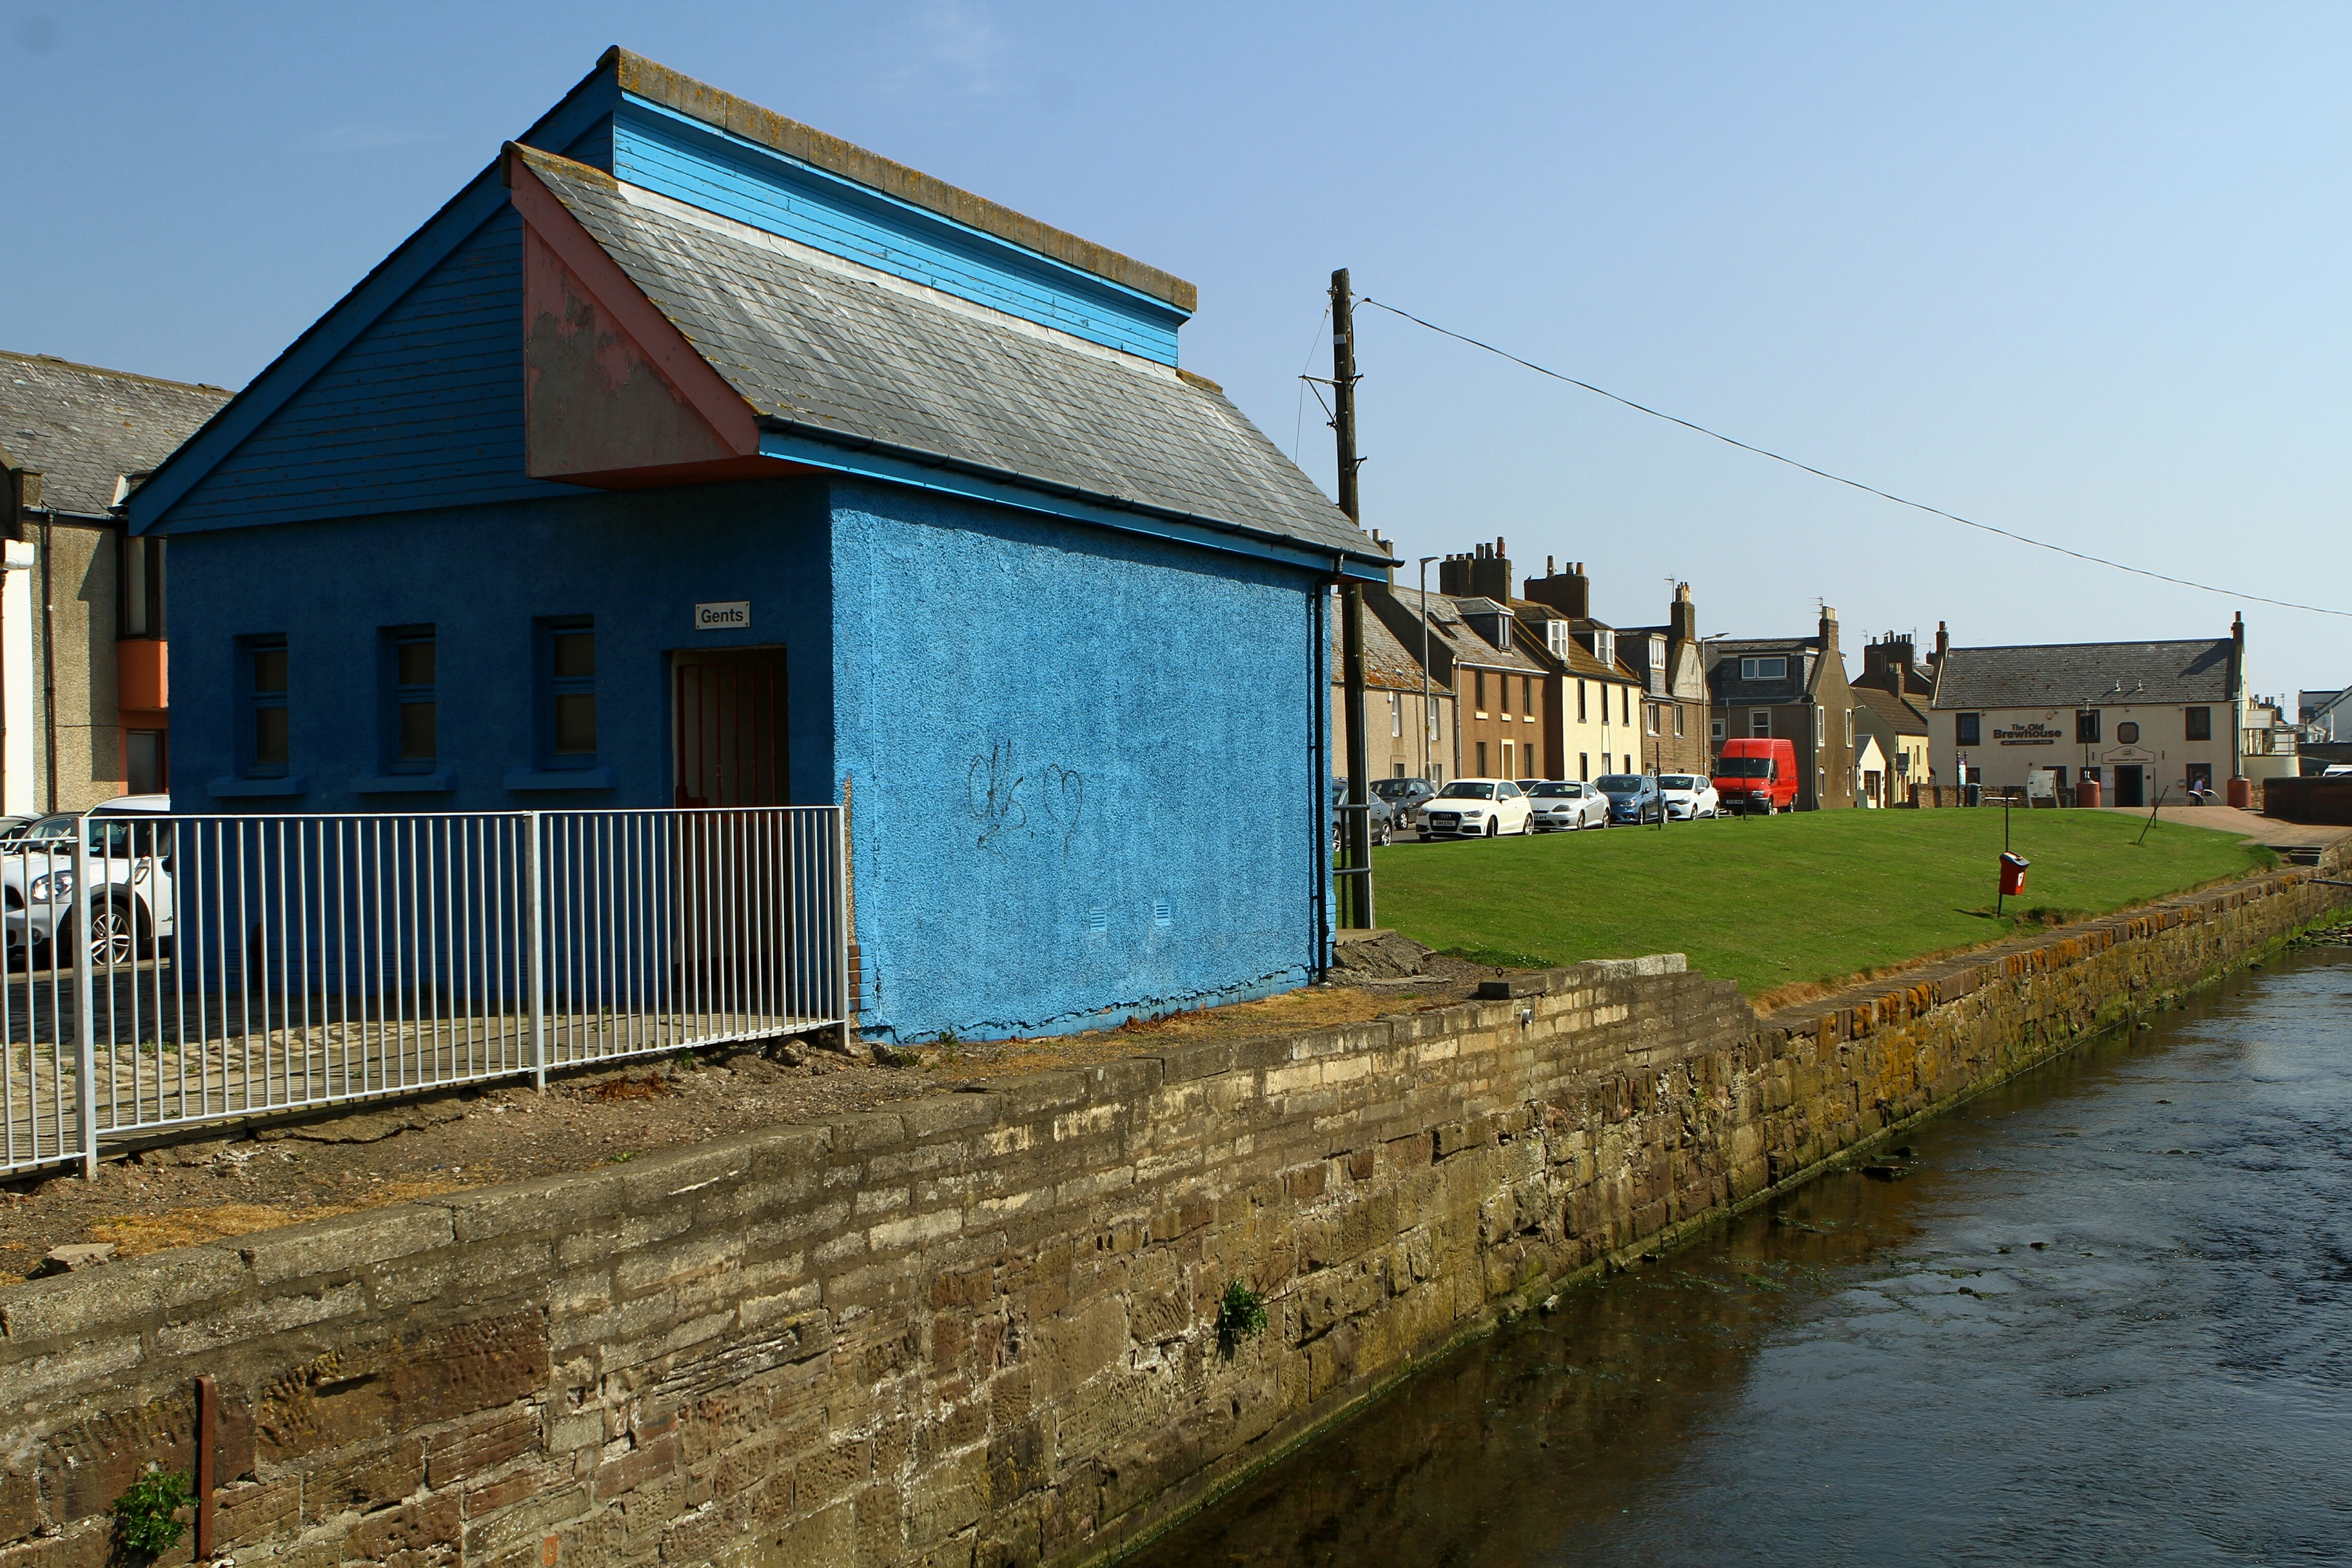 The former public toilet at Old Shore Head in Arbroath